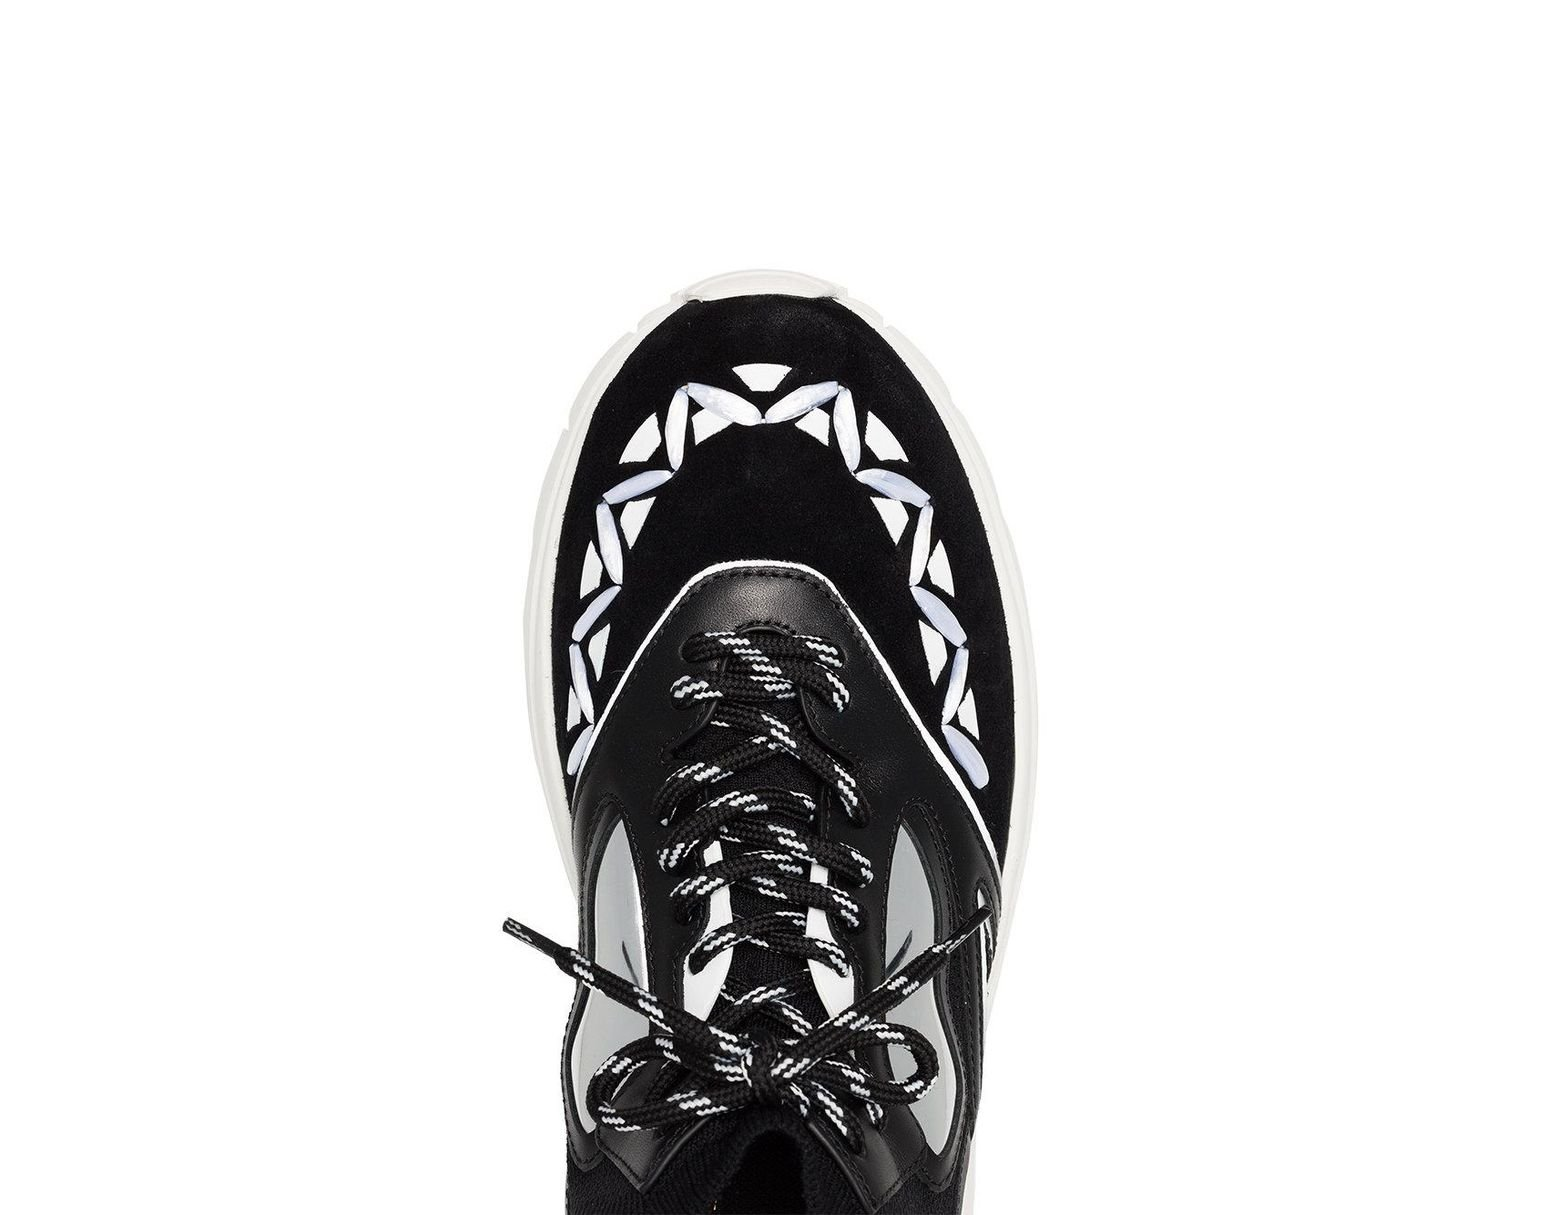 da2a9e8e15 Valentino Black Heroes Reflex Sneakers in Black for Men - Save 67% - Lyst